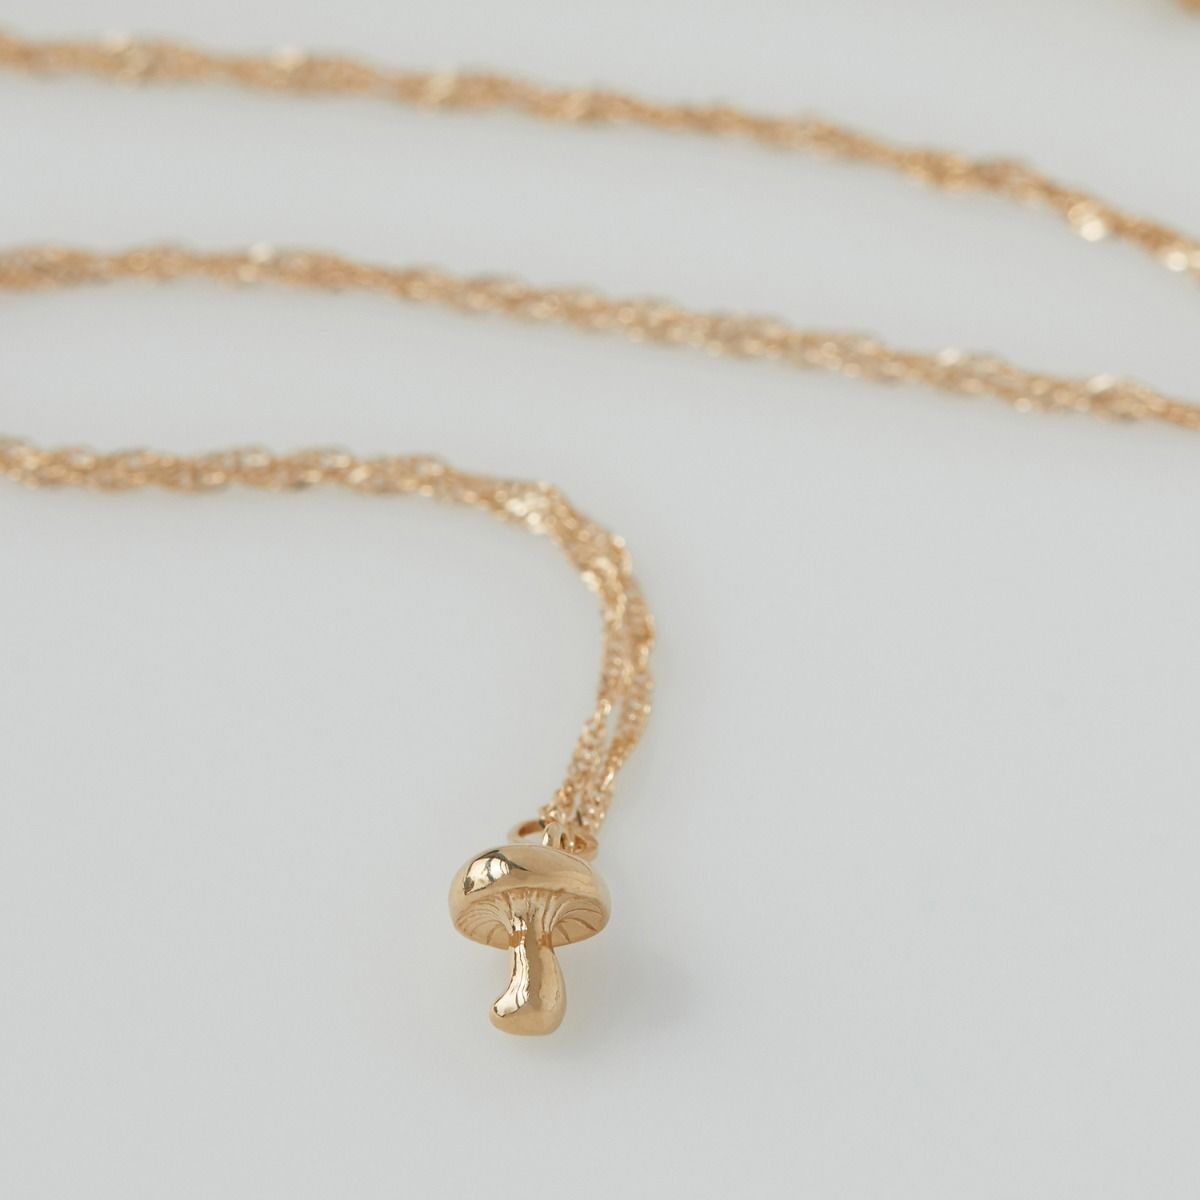 14K Yellow Gold Mushroom Charm Bracelet Necklace Catbird Brooklyn